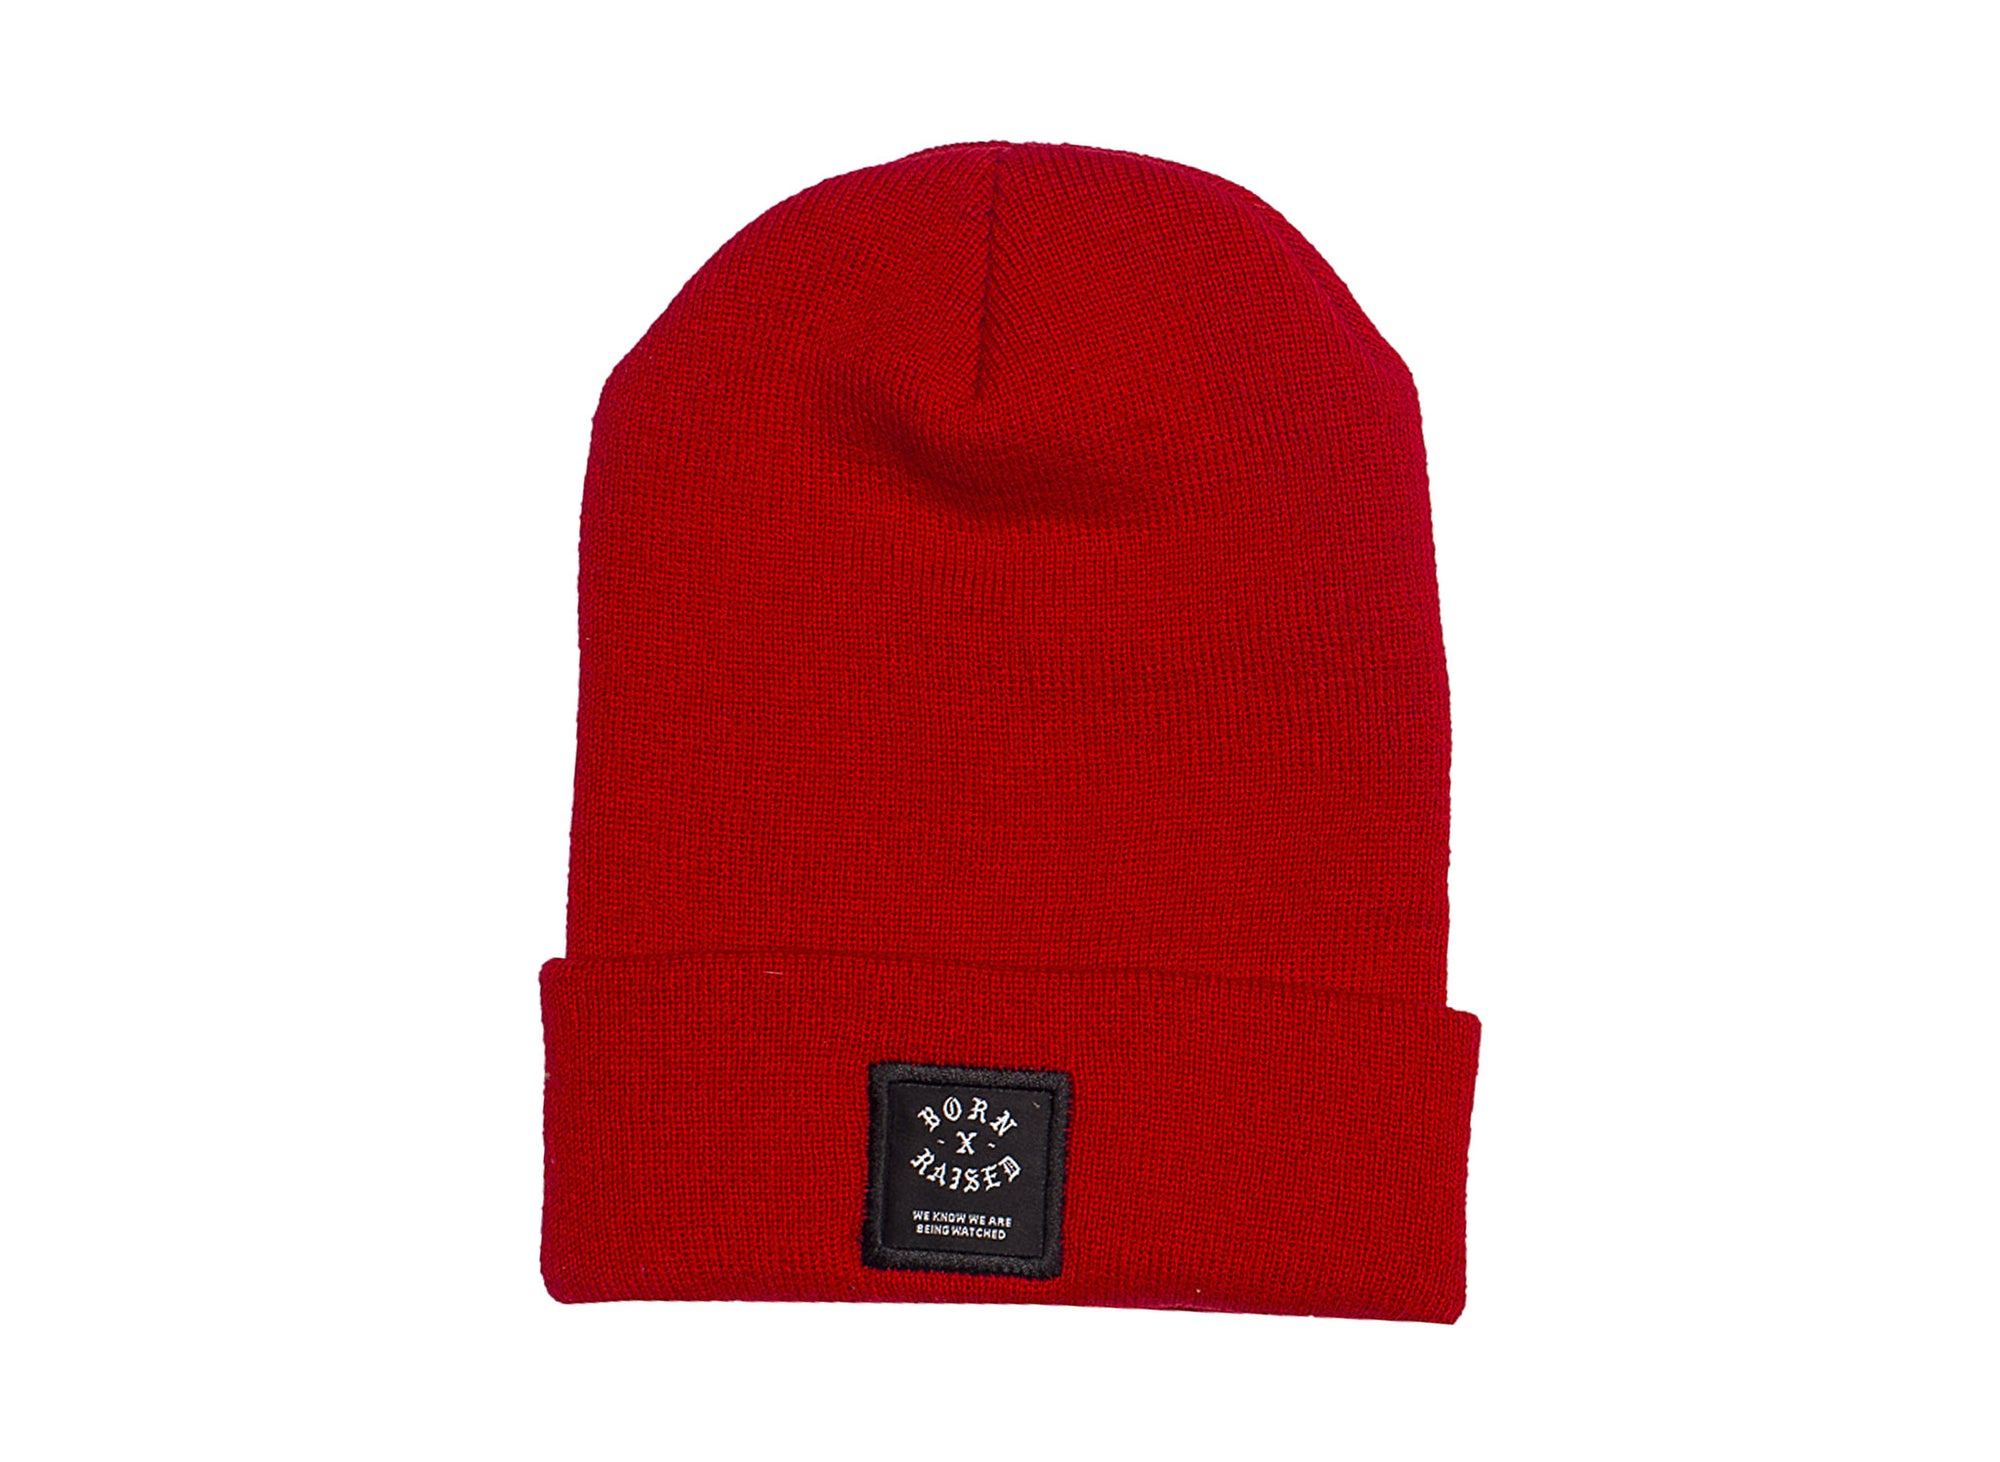 BORN x RAISED LABEL BEANIE